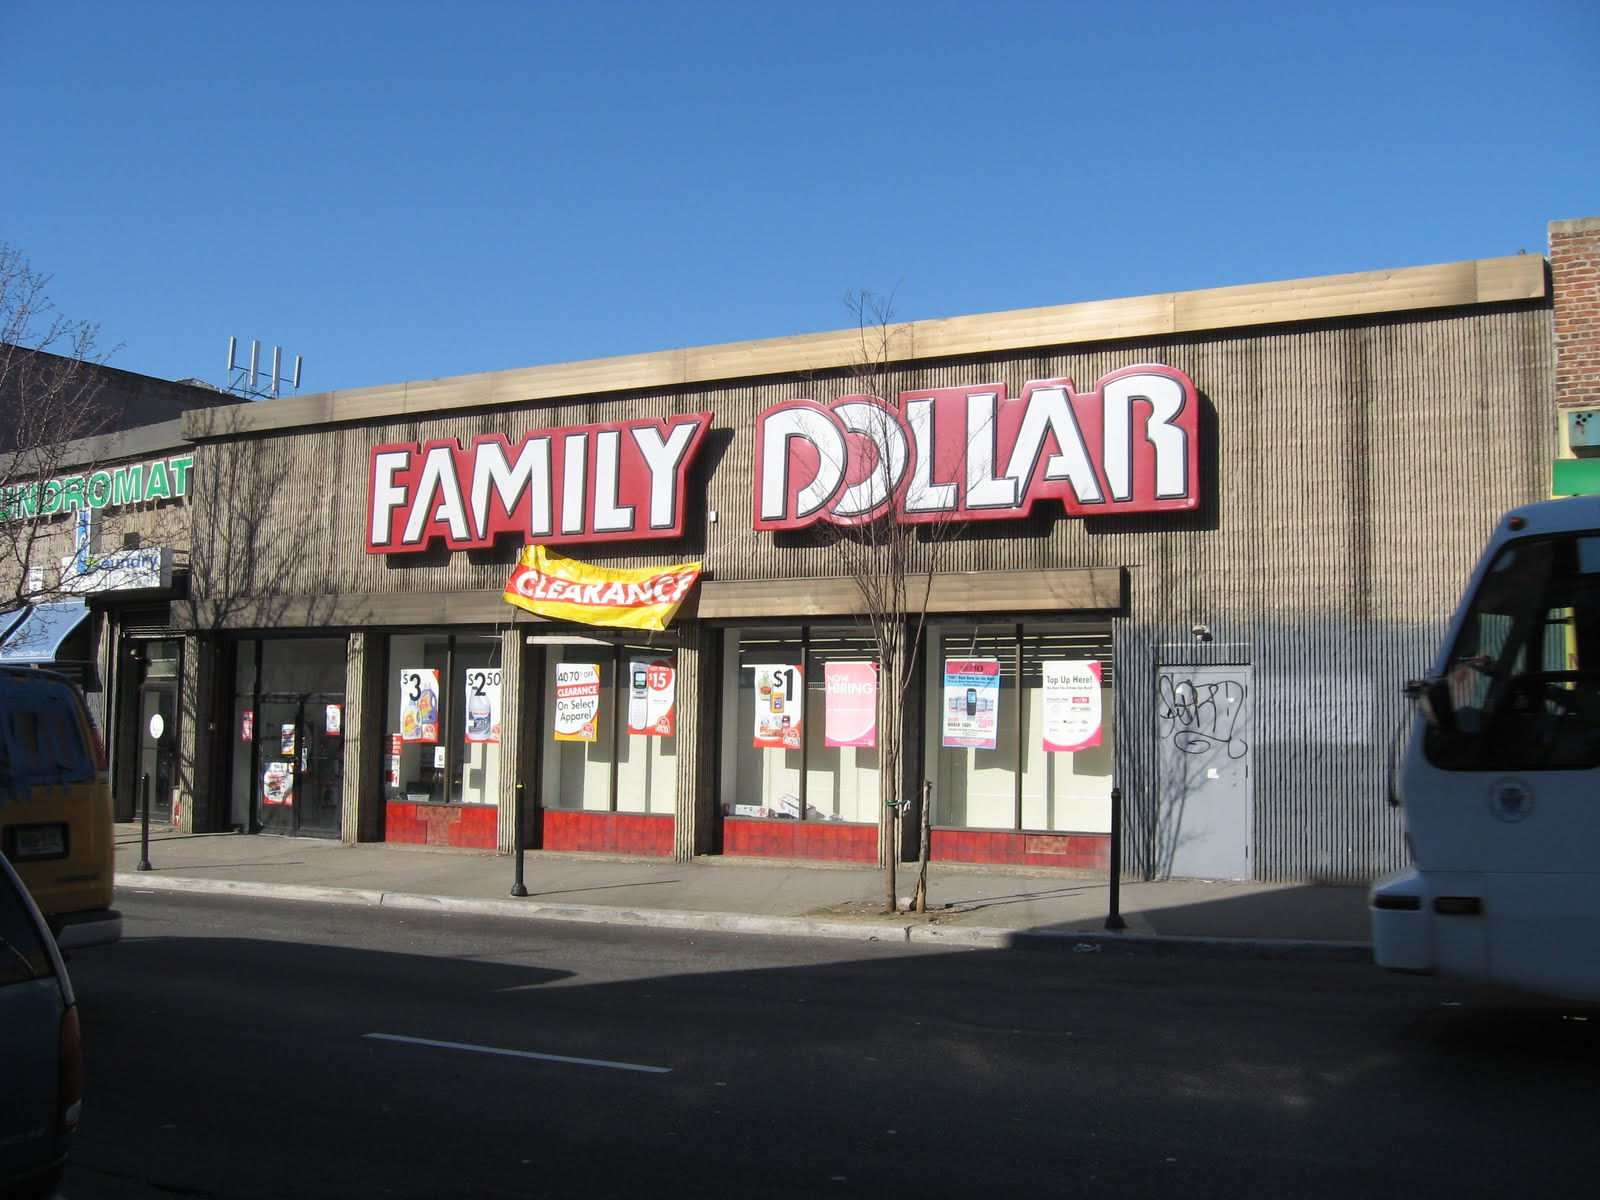 Shame on Family Dollar! Is it really that hard to be a good